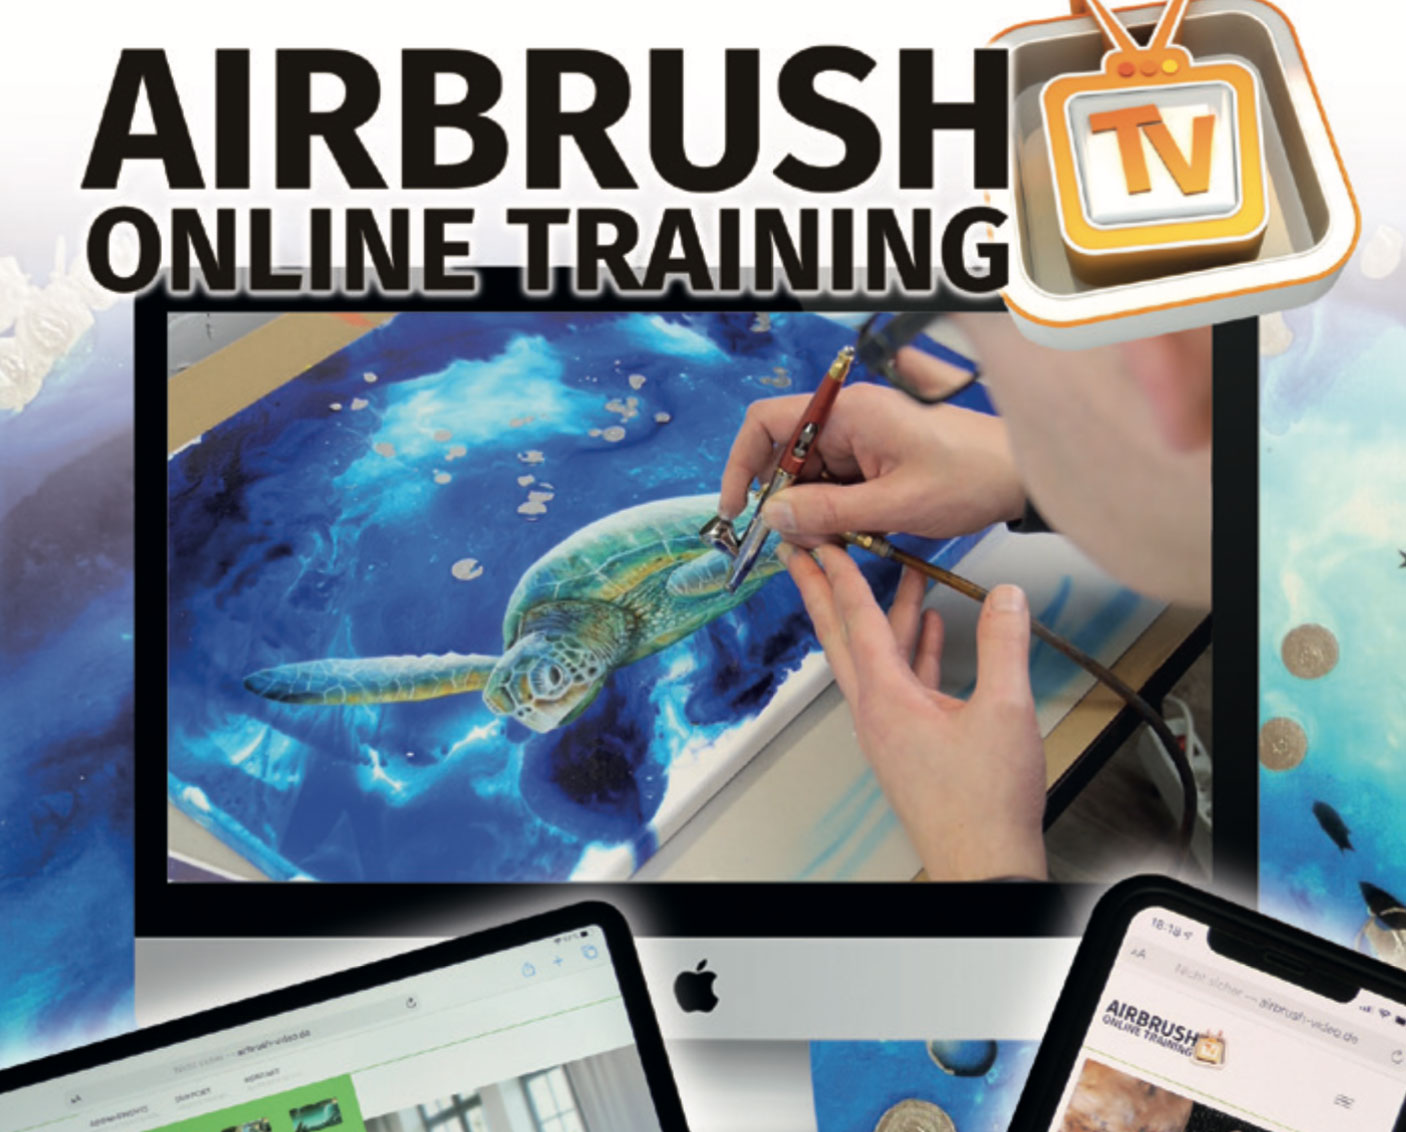 Airbrush Online Training: Das neue Videoportal von Airbrush Step by Step